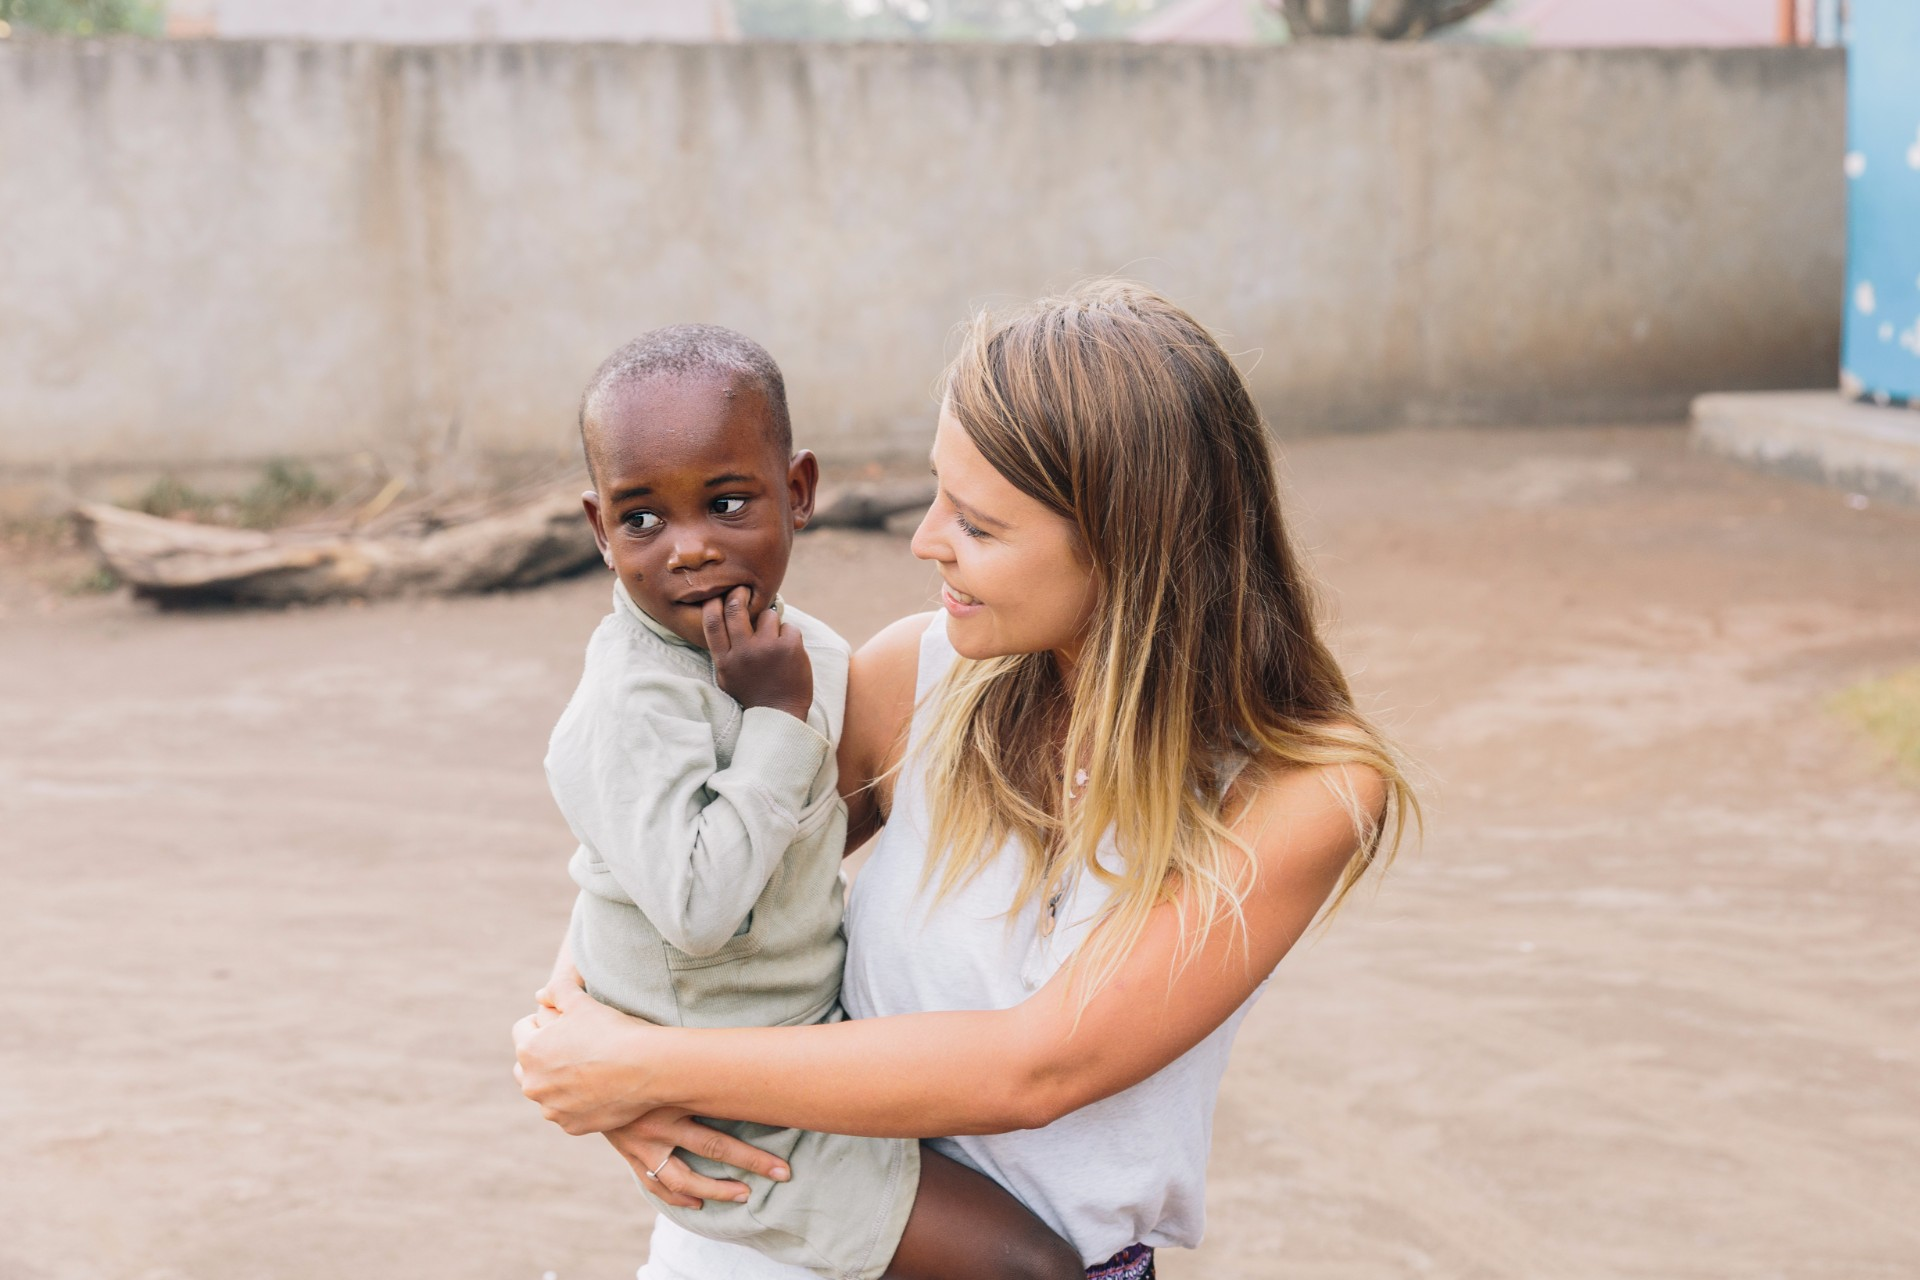 Melissa_Findley-OrphFund-3.jpg